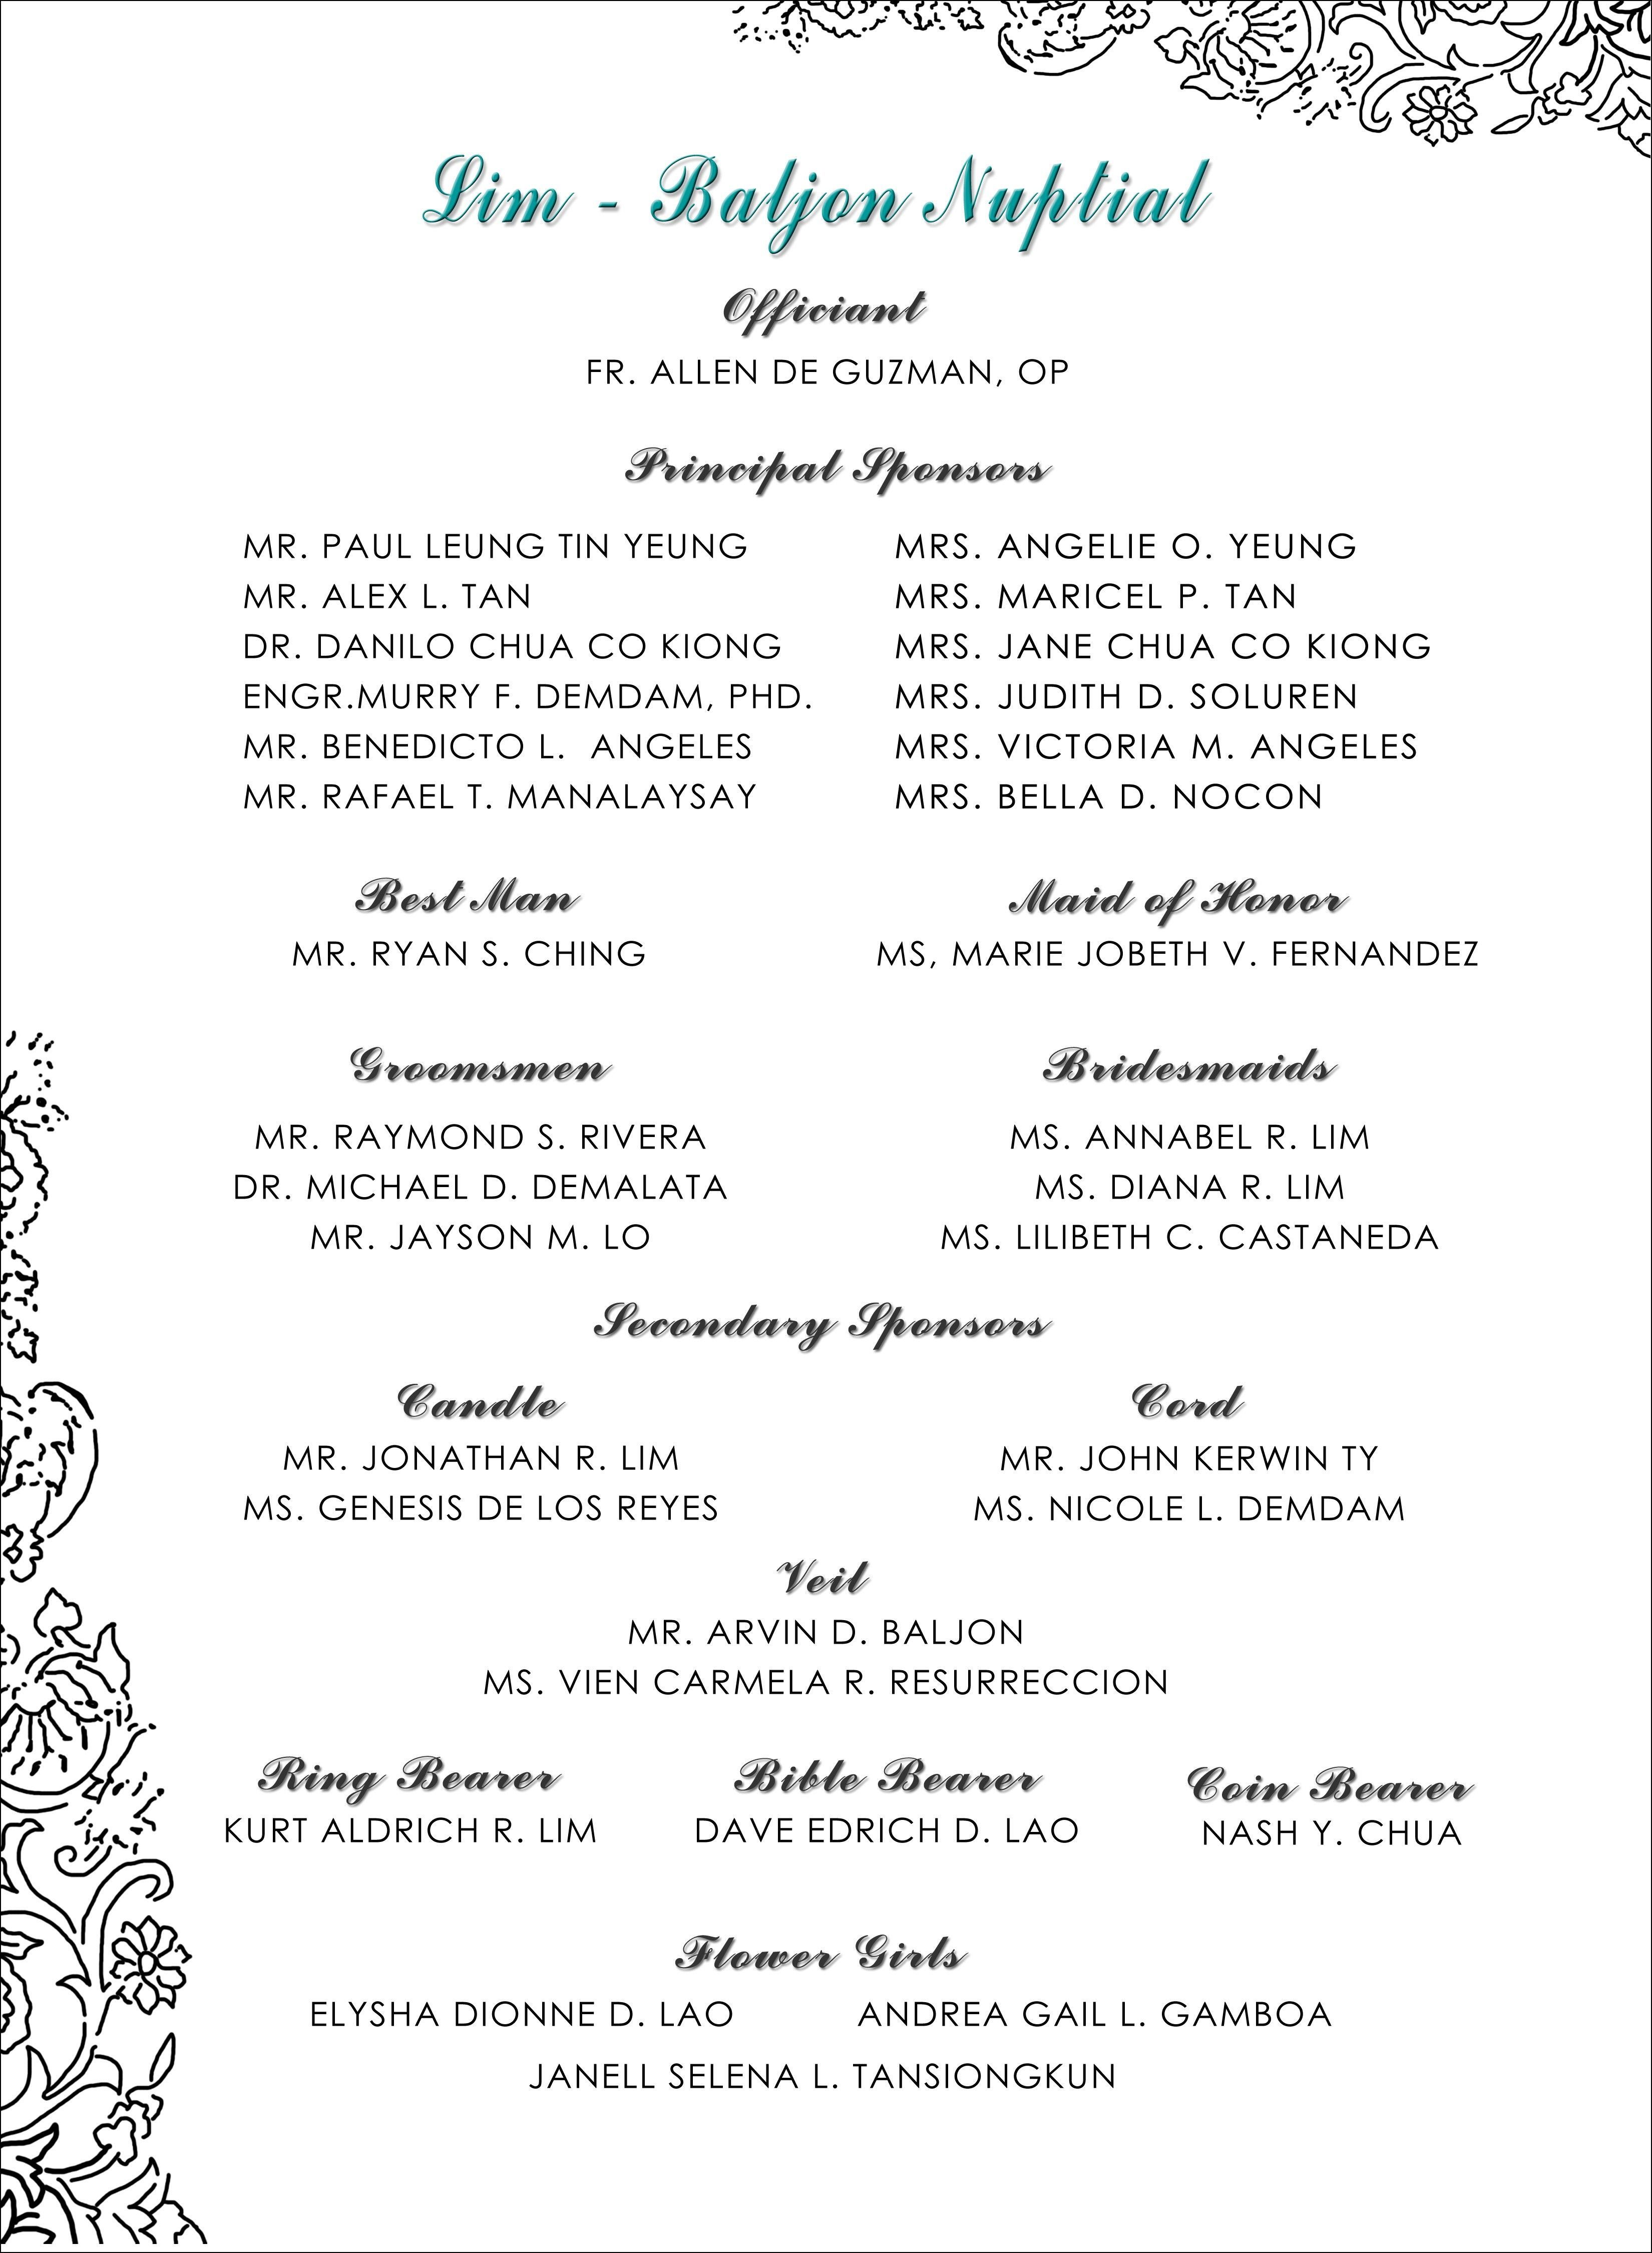 Wedding Invitation With Sponsors Wedding Invitation List Beach Wedding Invitation Wording Wedding Invitation Card Design